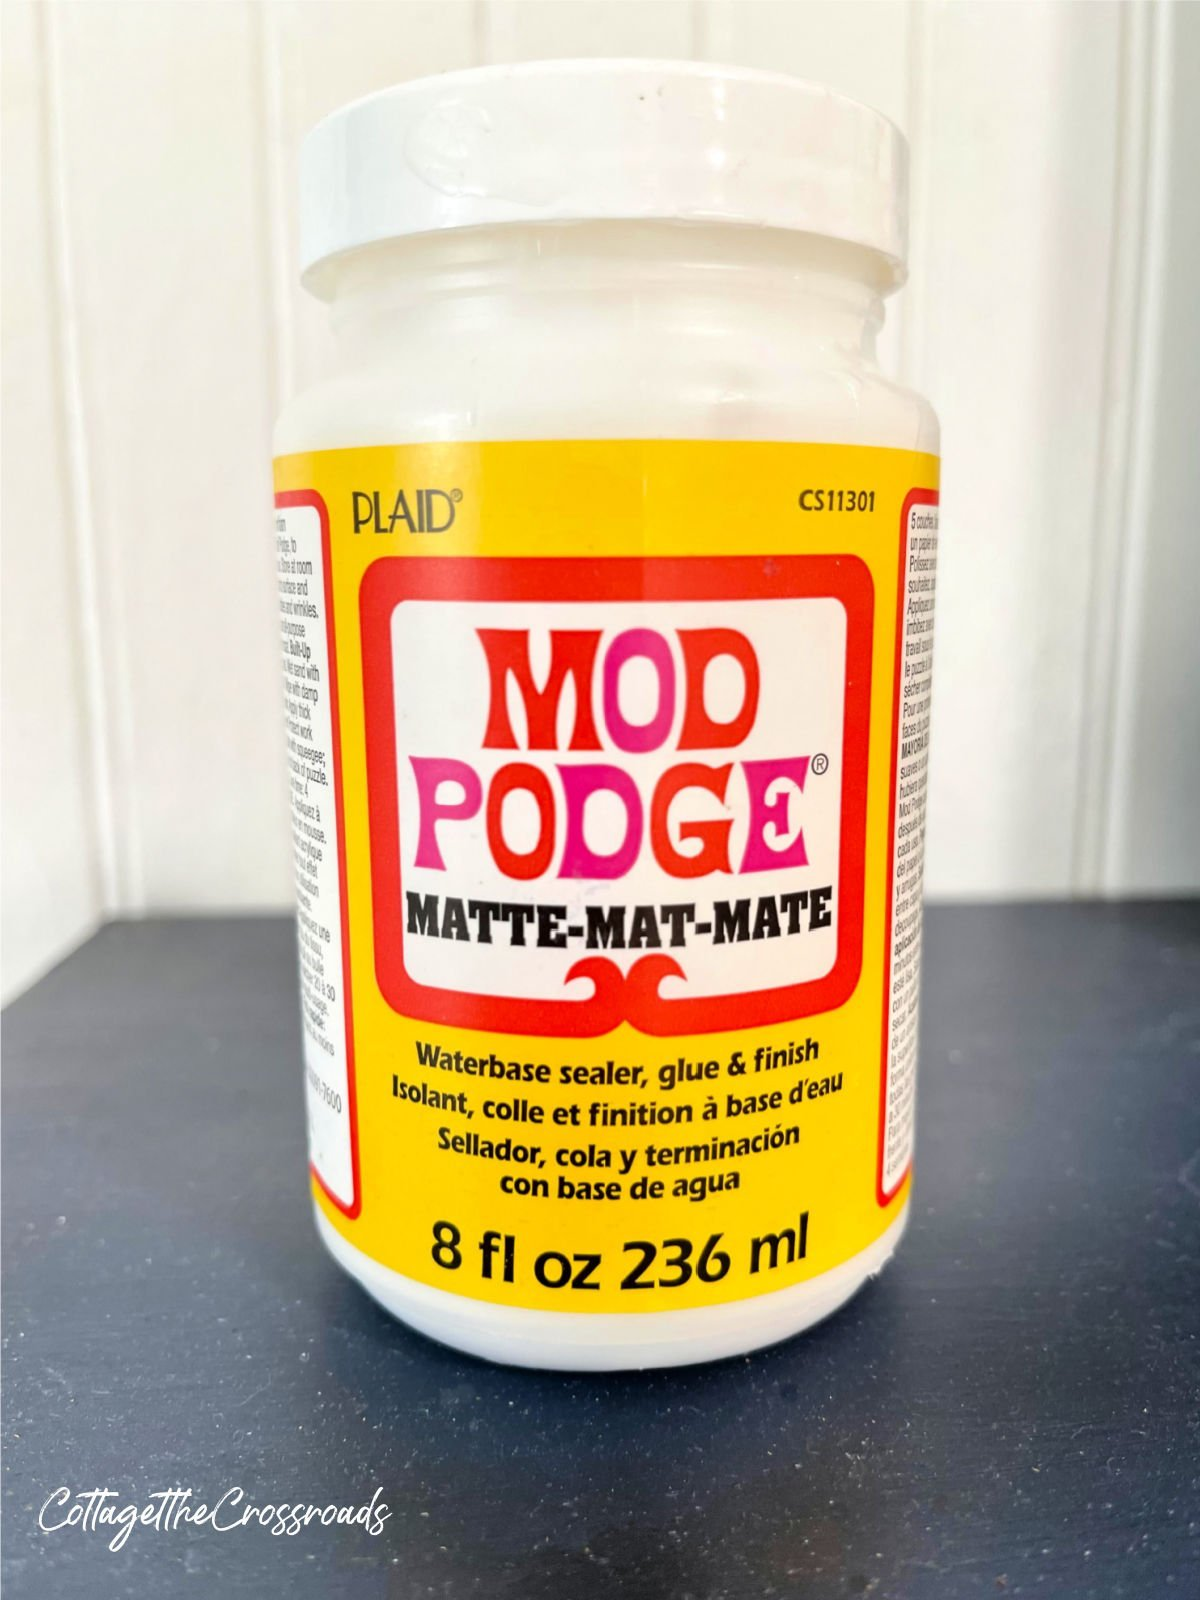 container of Mod Podge